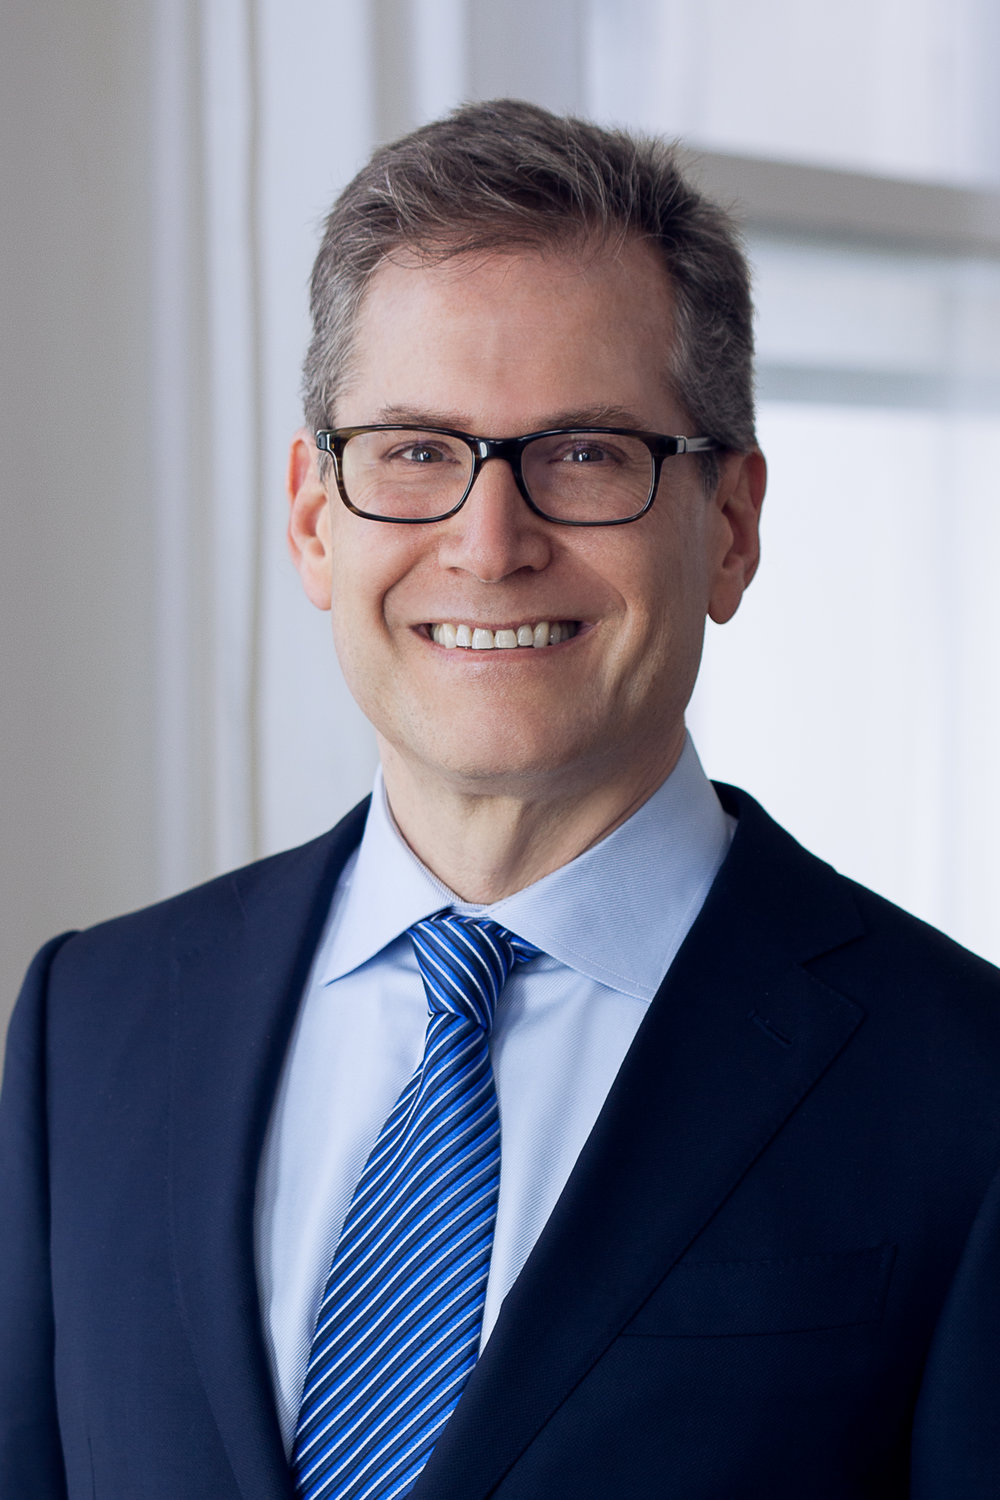 <b>DAVID WACHTER</b><br>W Capital Partners<br>Managing Director and <br>Founding Partner